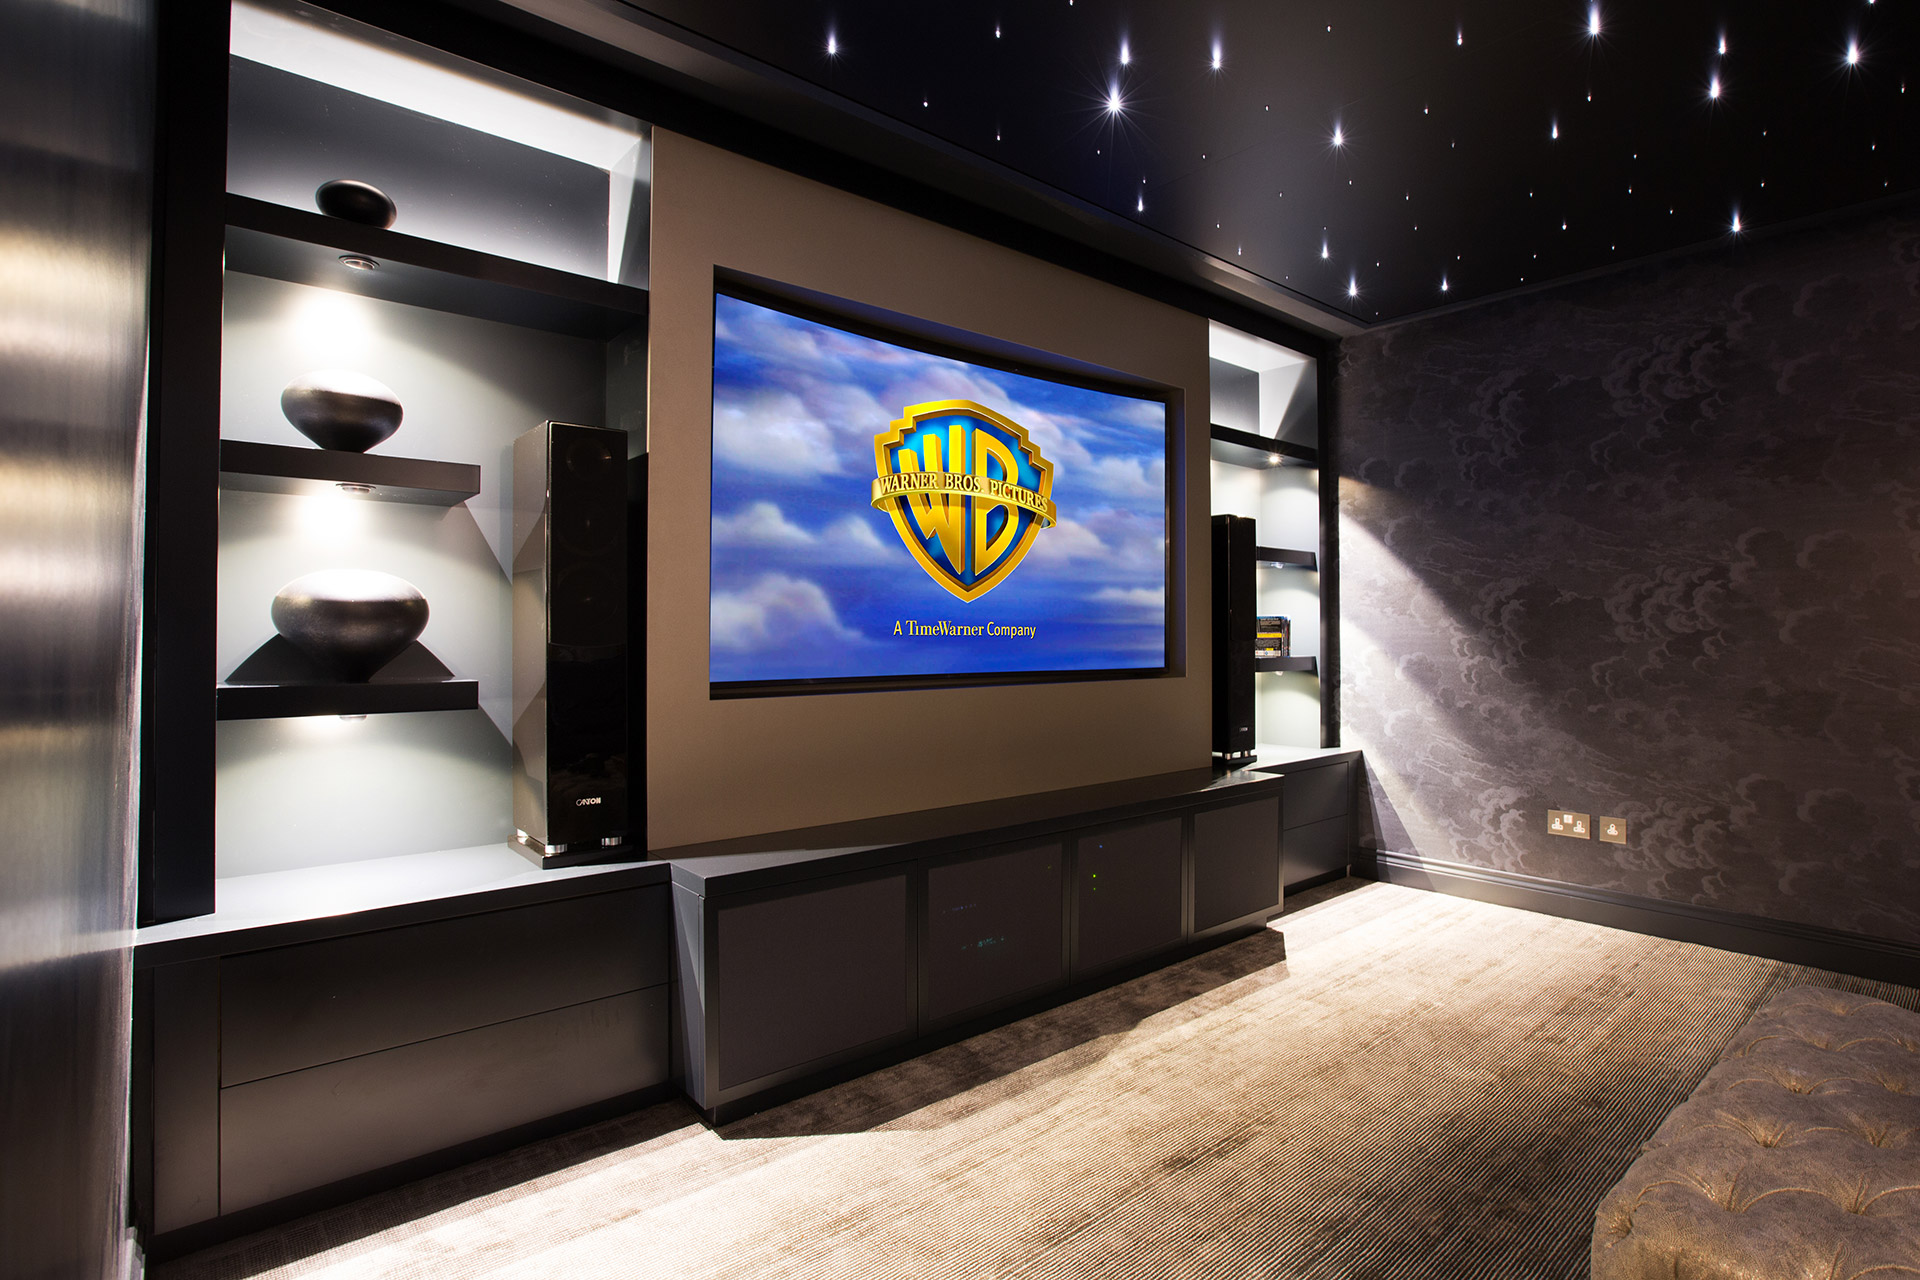 home cinema and media rooms enhance your viewing experience enhance your viewing experience with the addition of a home cinema or media room